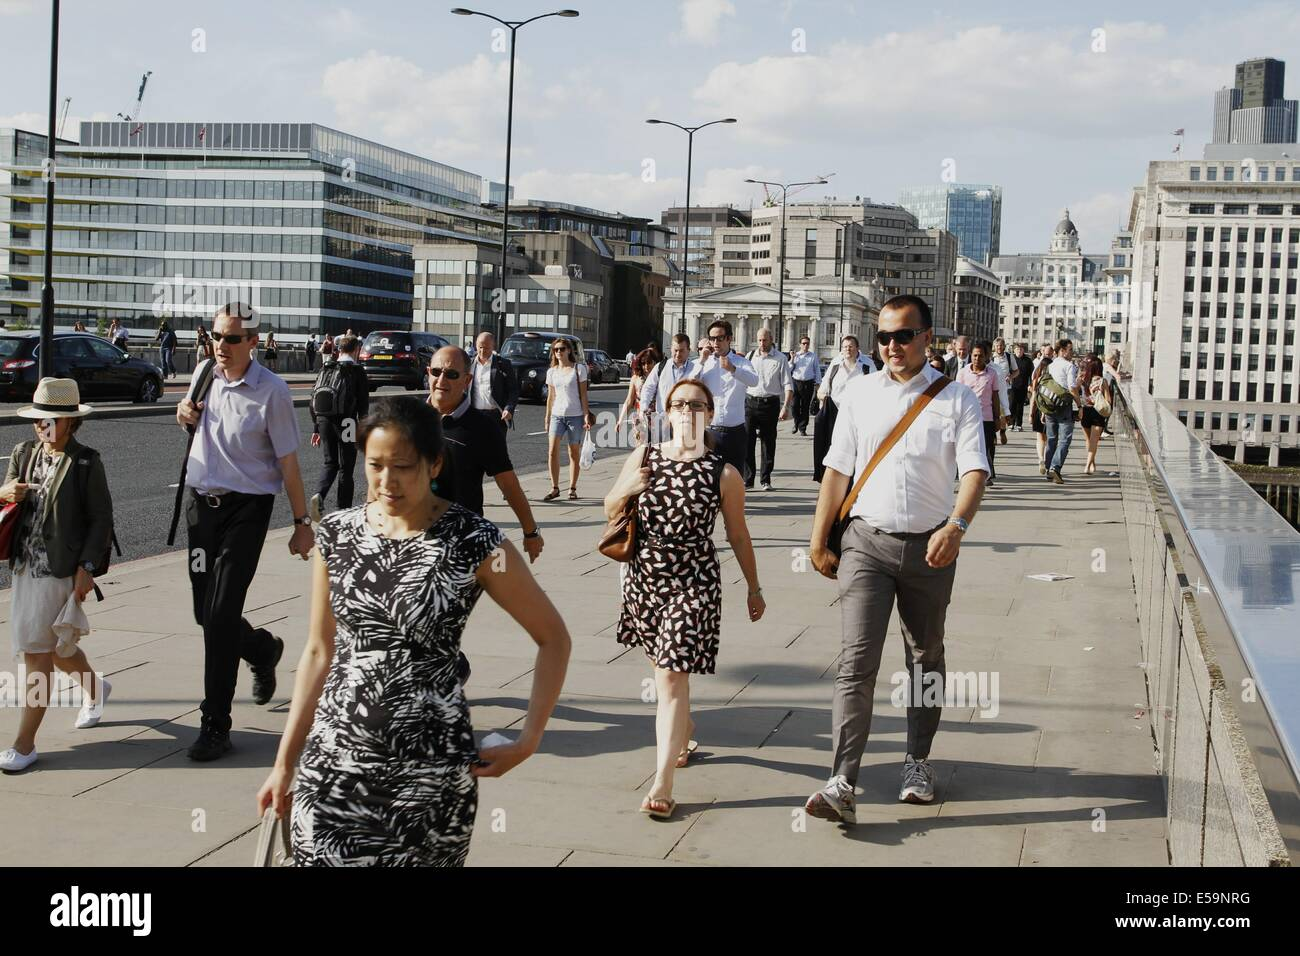 London, UK. 24th July, 2014.   People walk across London bridge as the good weather continues in England. Credit: - Stock Image